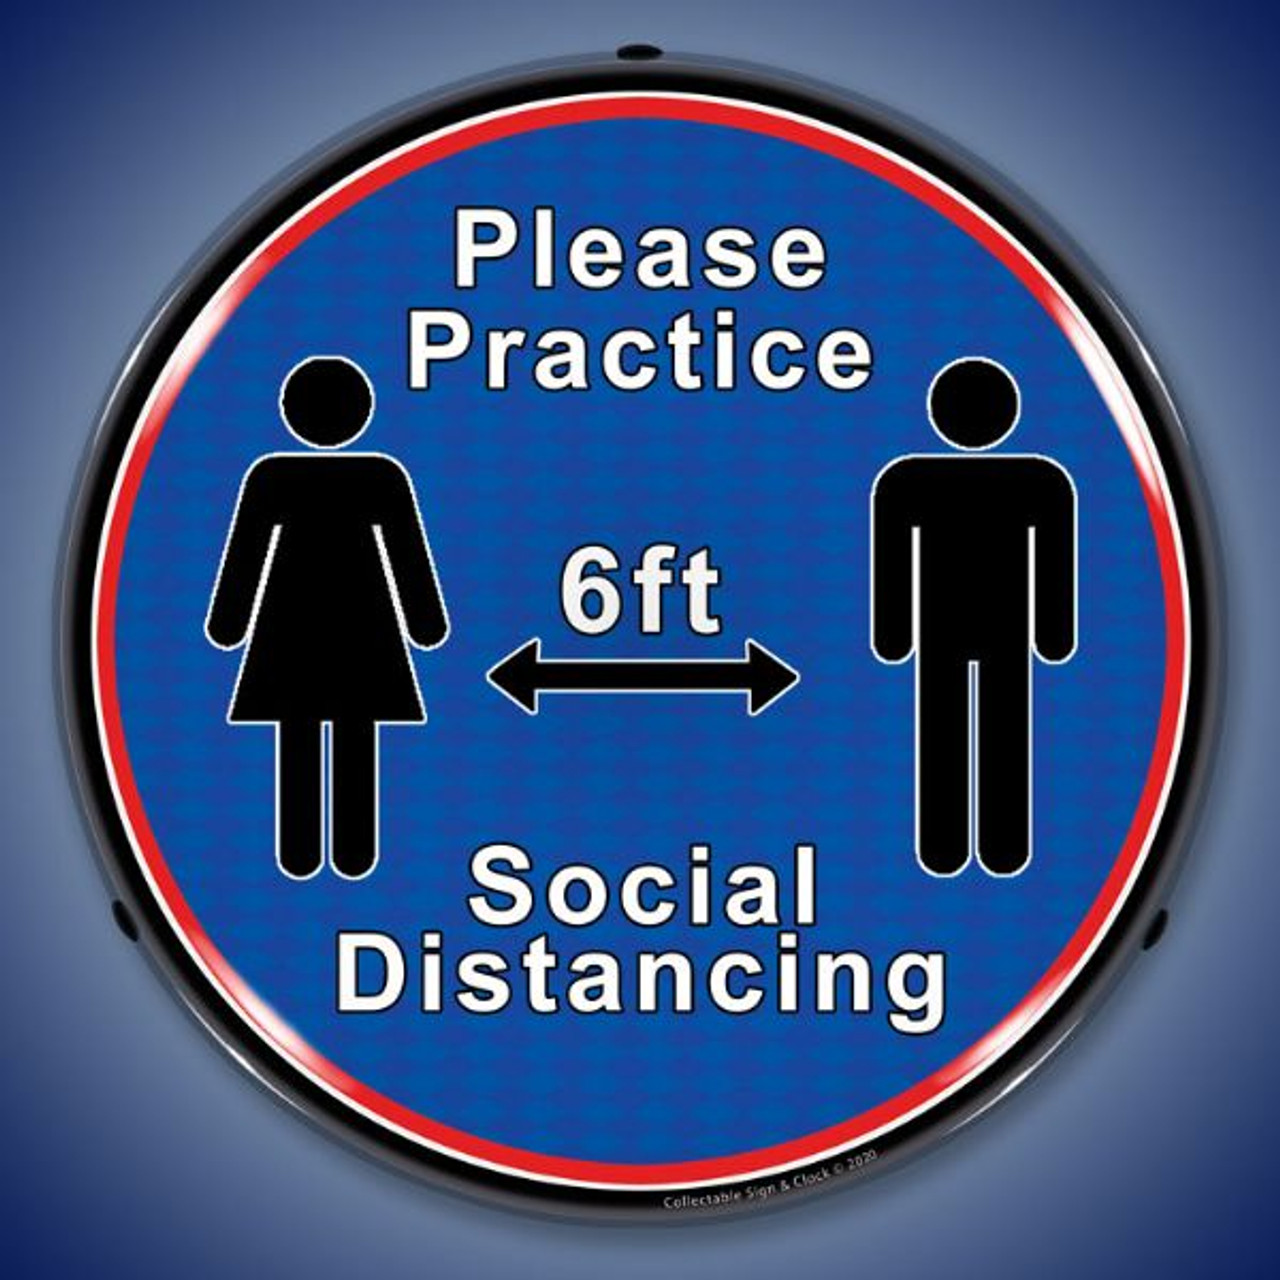 Please Practice Social Distancing LED Lighted Business Sign 14 x 14 Inches